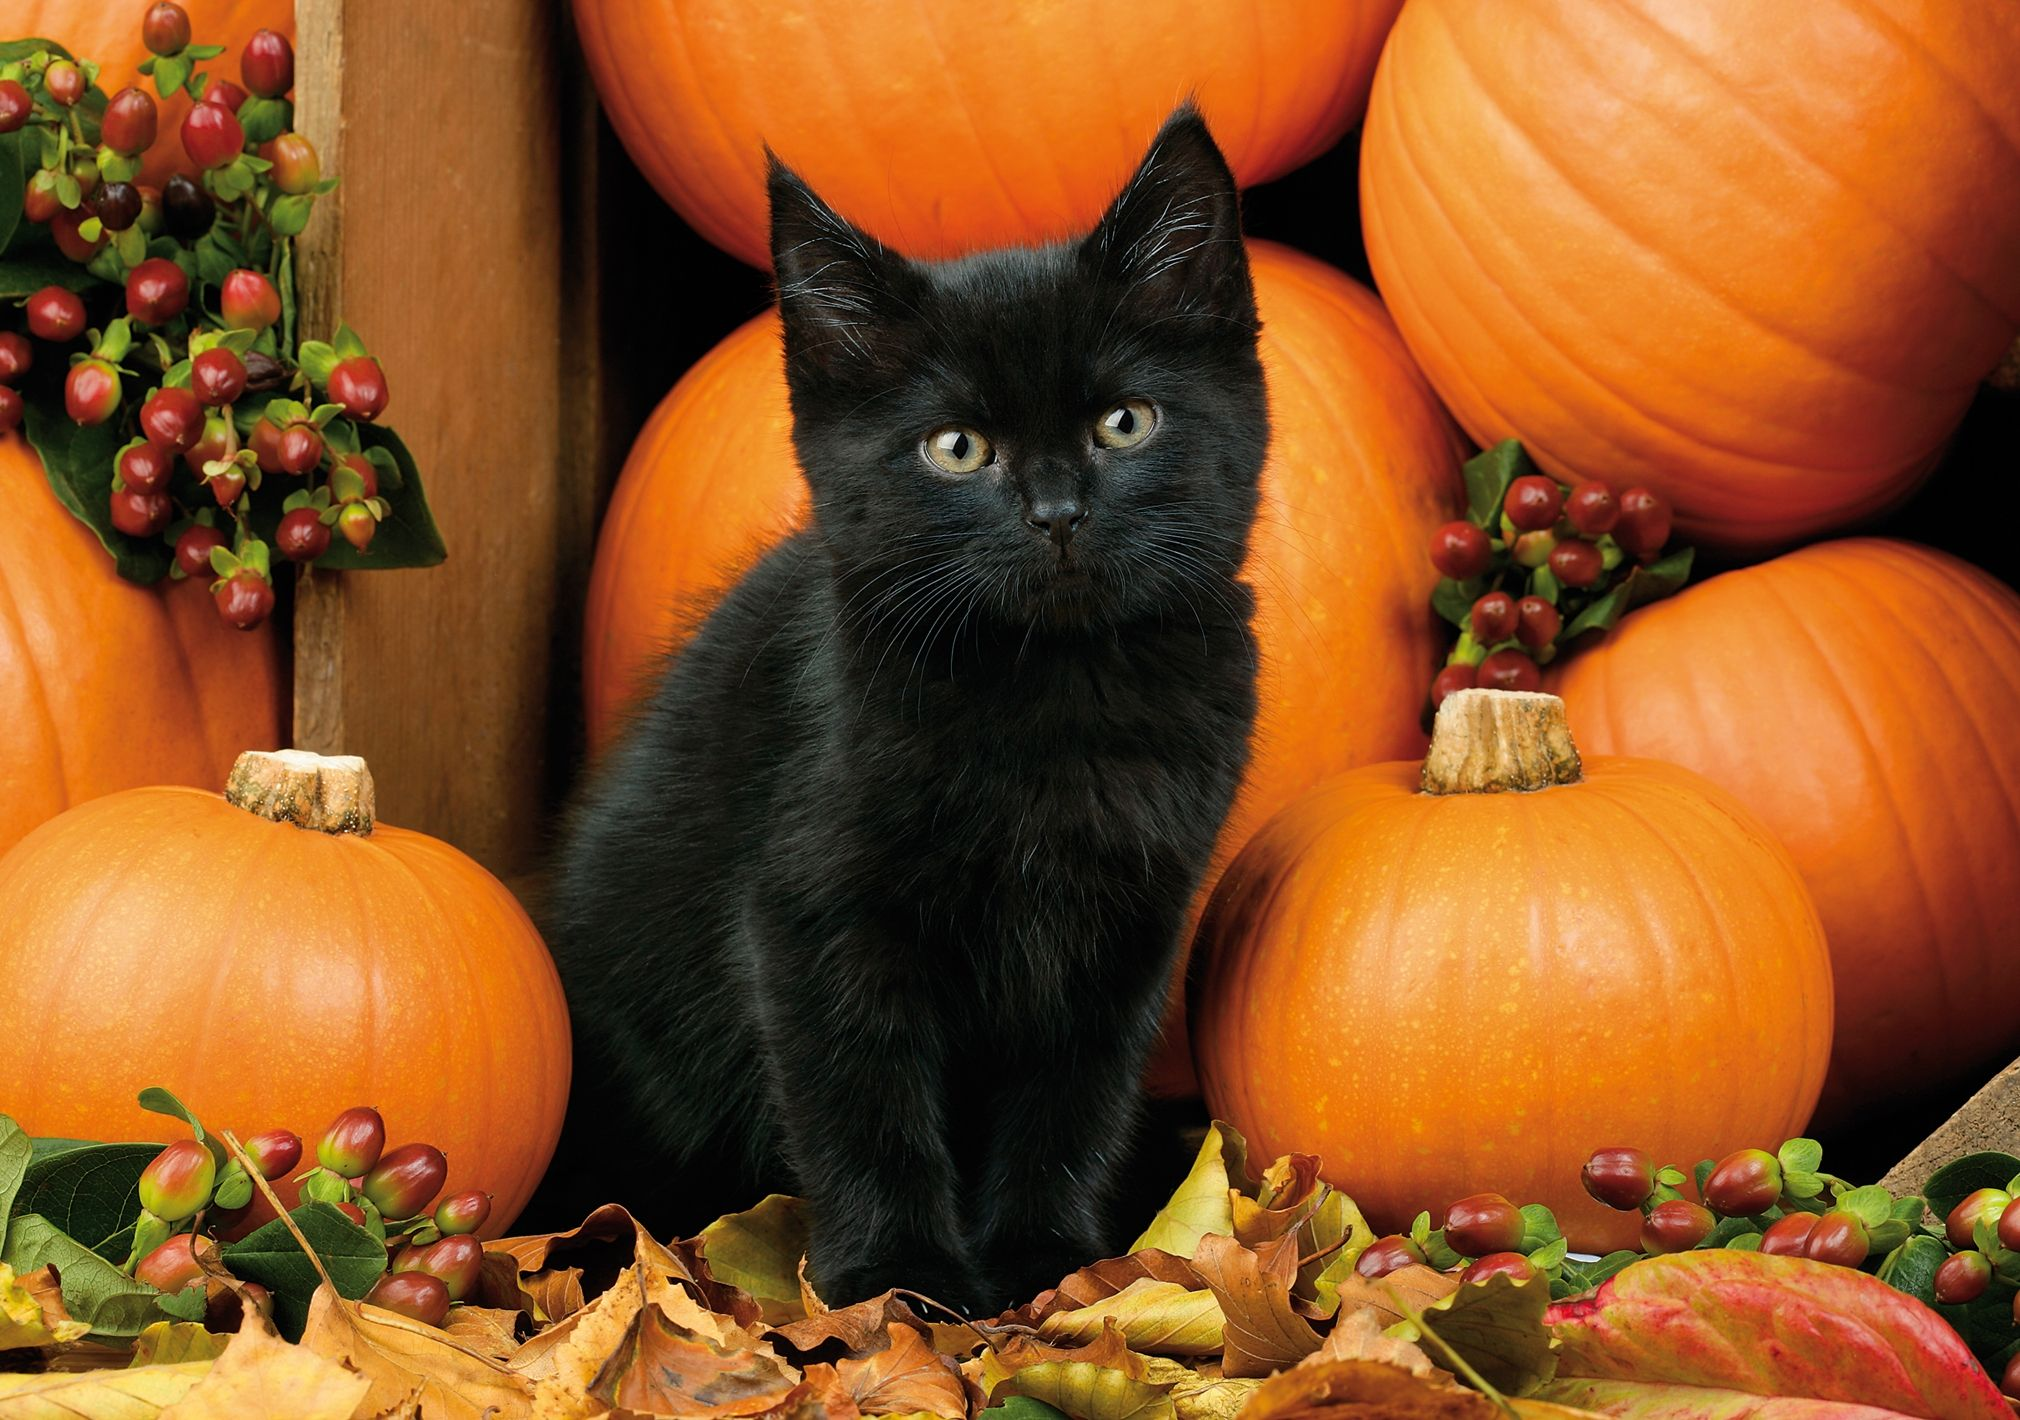 Free Desktop Wallpaper Fall Scenes Black Cat Halloween Wallpaper Autumn Kitten Berries